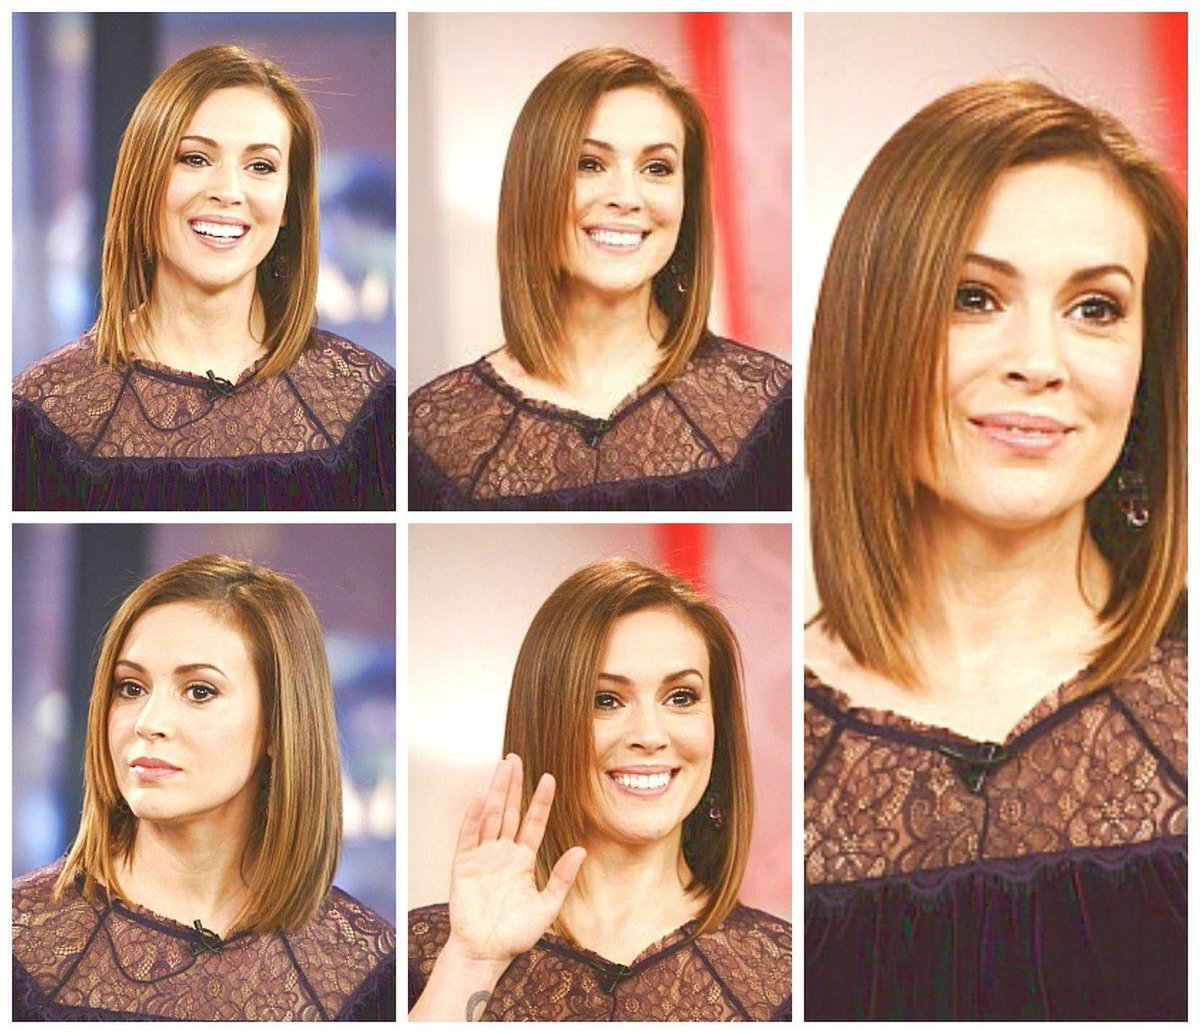 Too bad I still #miss this @Alyssa_Milano #hairstyle from #sundaysattiffany! Anybody #agree? Check out #more &gt;&gt;  http://www. alyssa-j-milano.com  &nbsp;  <br>http://pic.twitter.com/Om9t15UaJ4